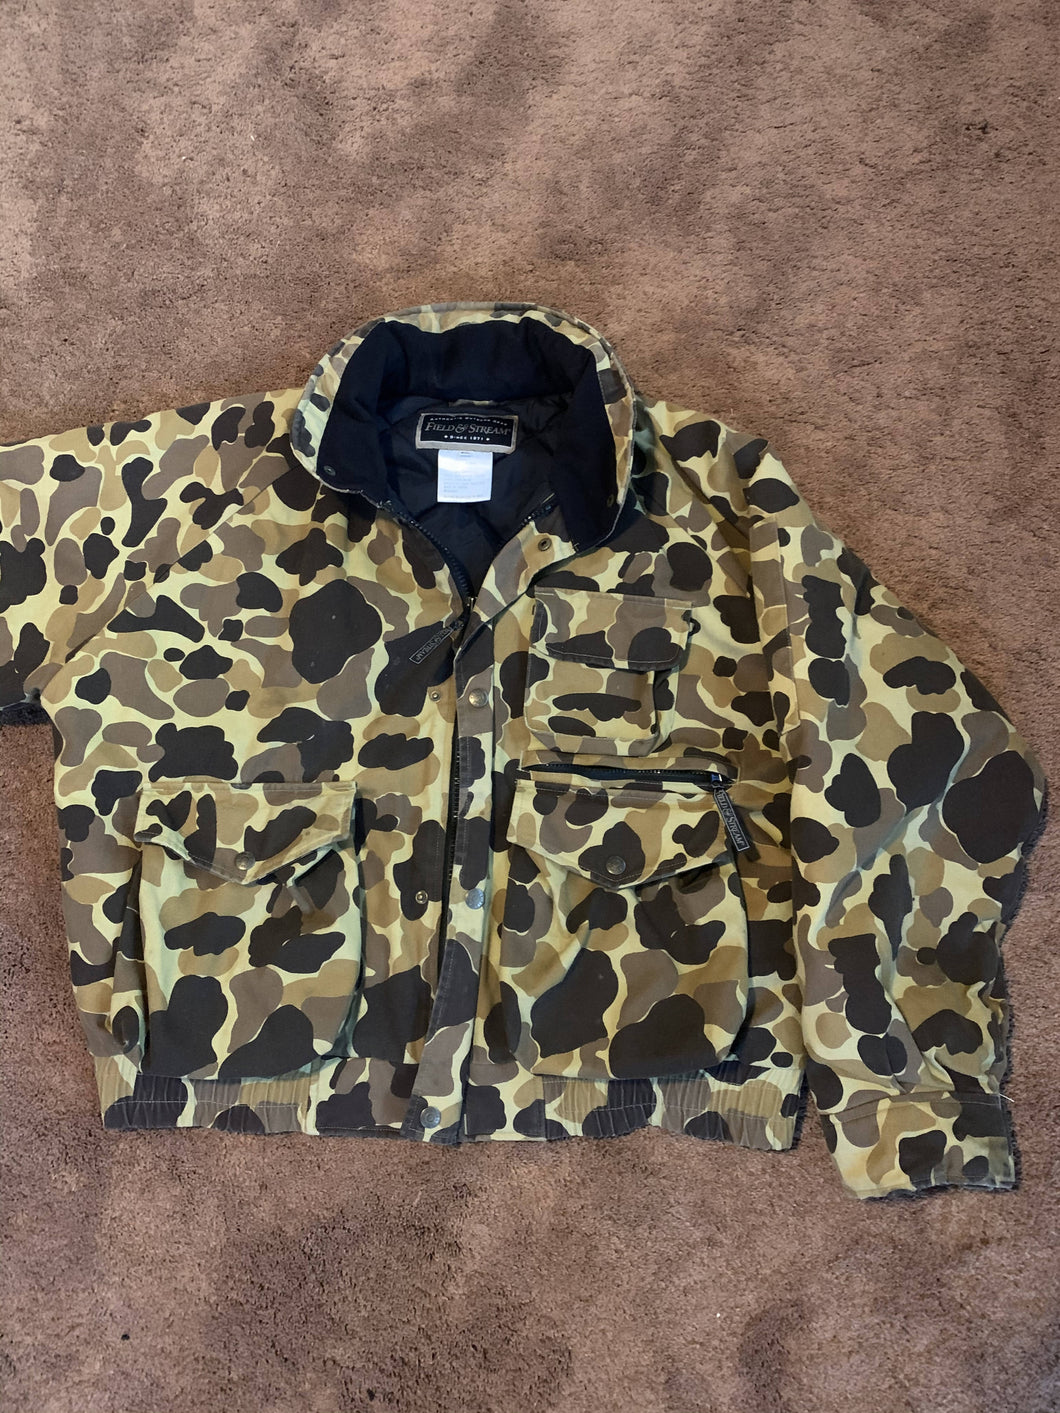 Vintage Field and Stream Jacket (XXL)